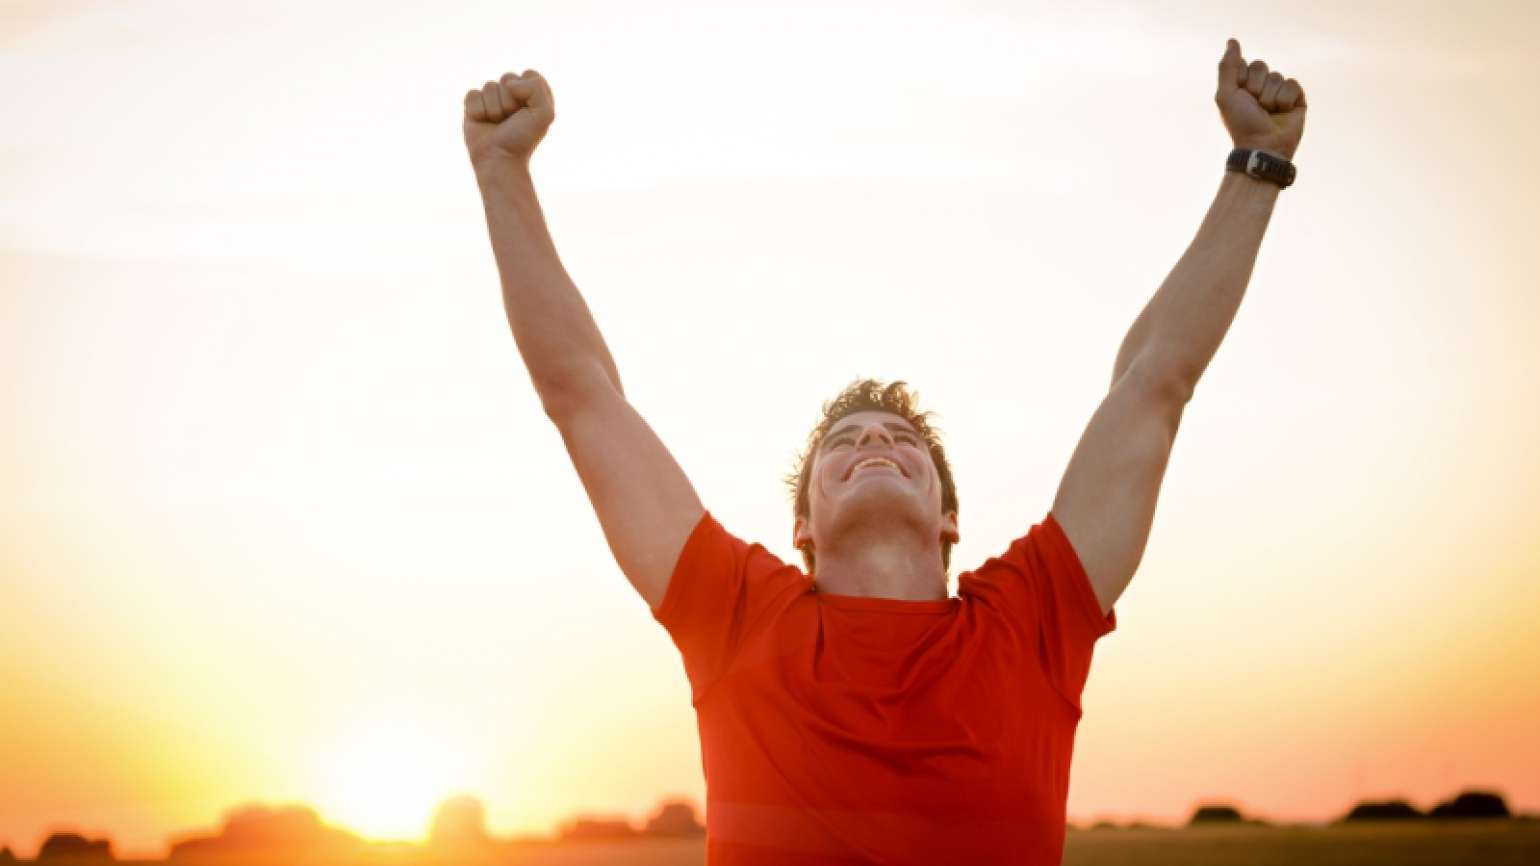 Man with arms lifted in triumph